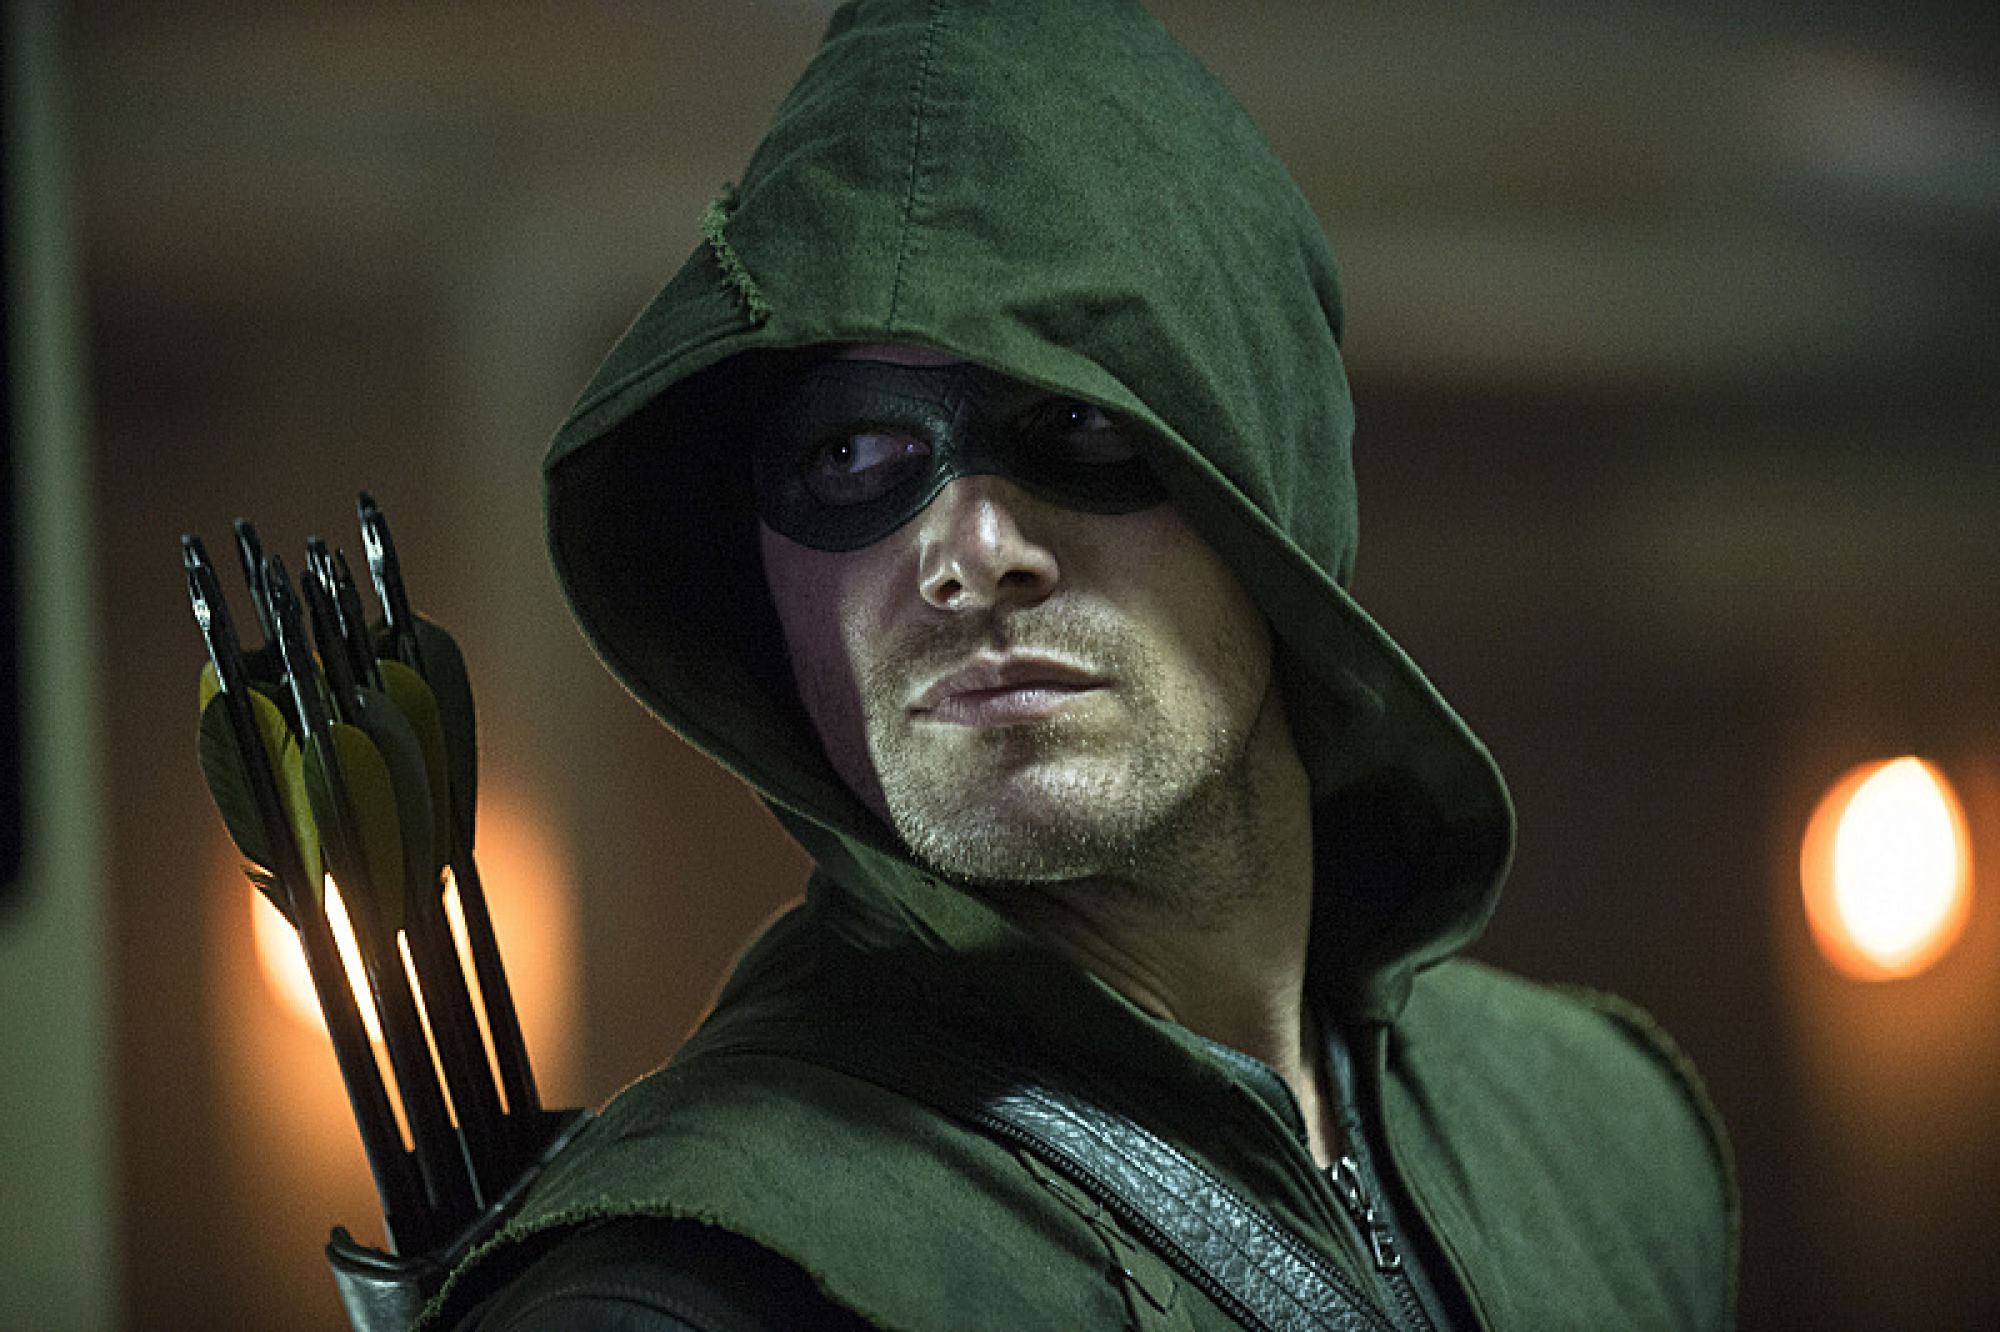 NYCC 2014: Stephen Amell talks 'Arrow' season 3, the death ...